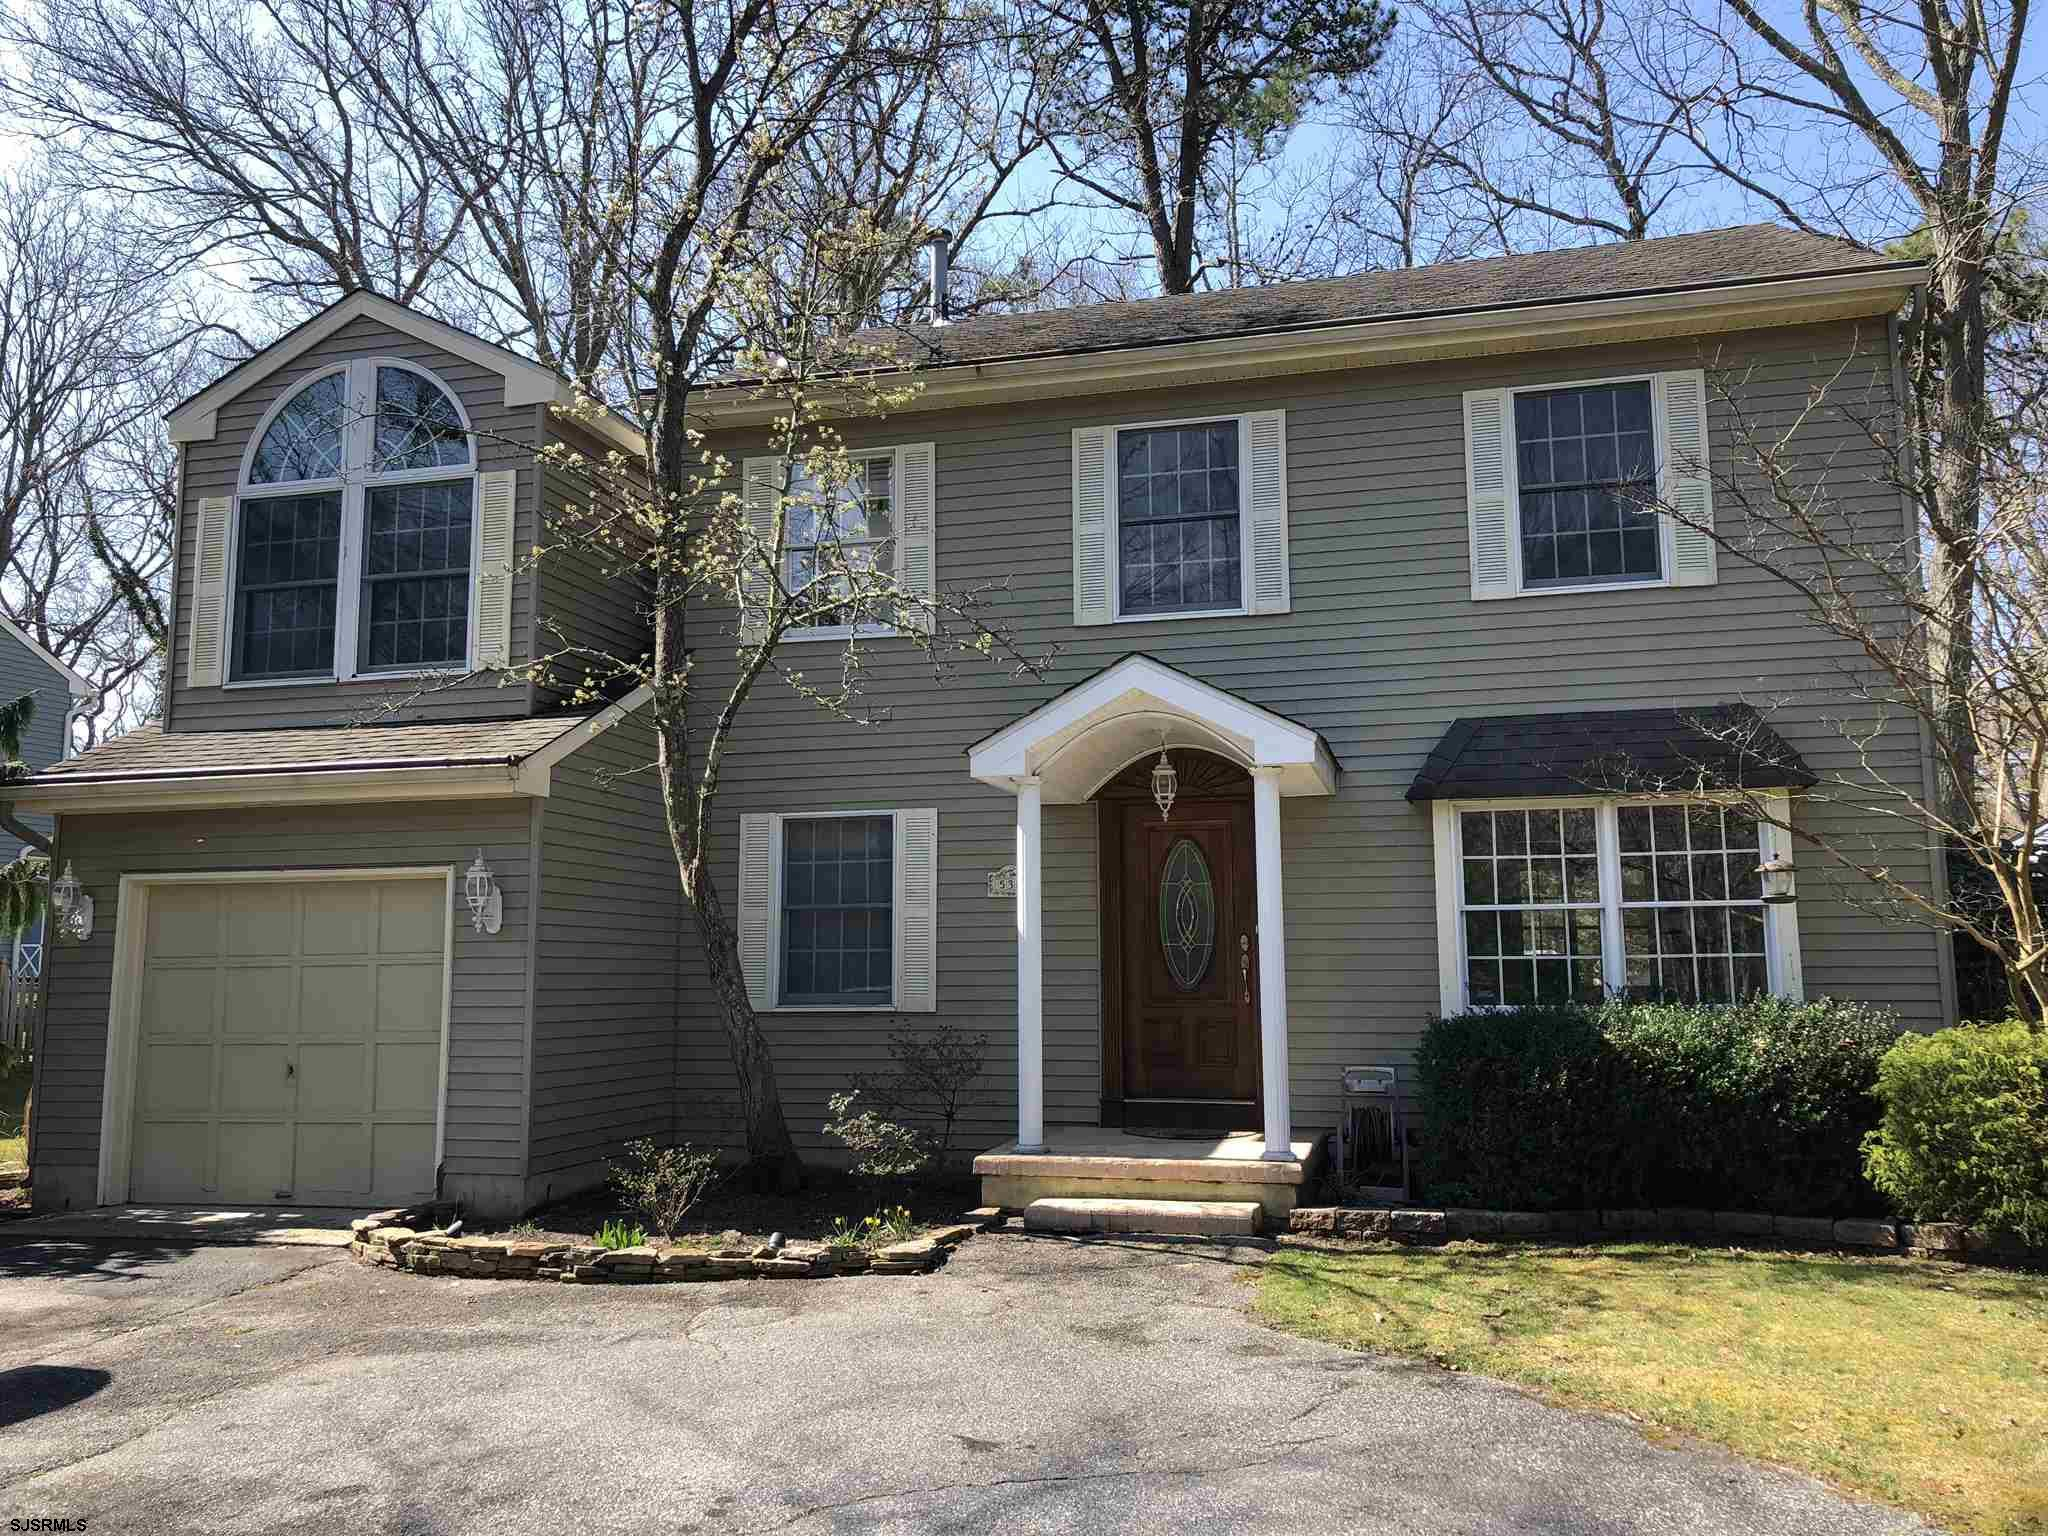 This beauty is wrapped up and ready to go! This colonial offering 4BR and 2.5 BTH on over .25 acre a